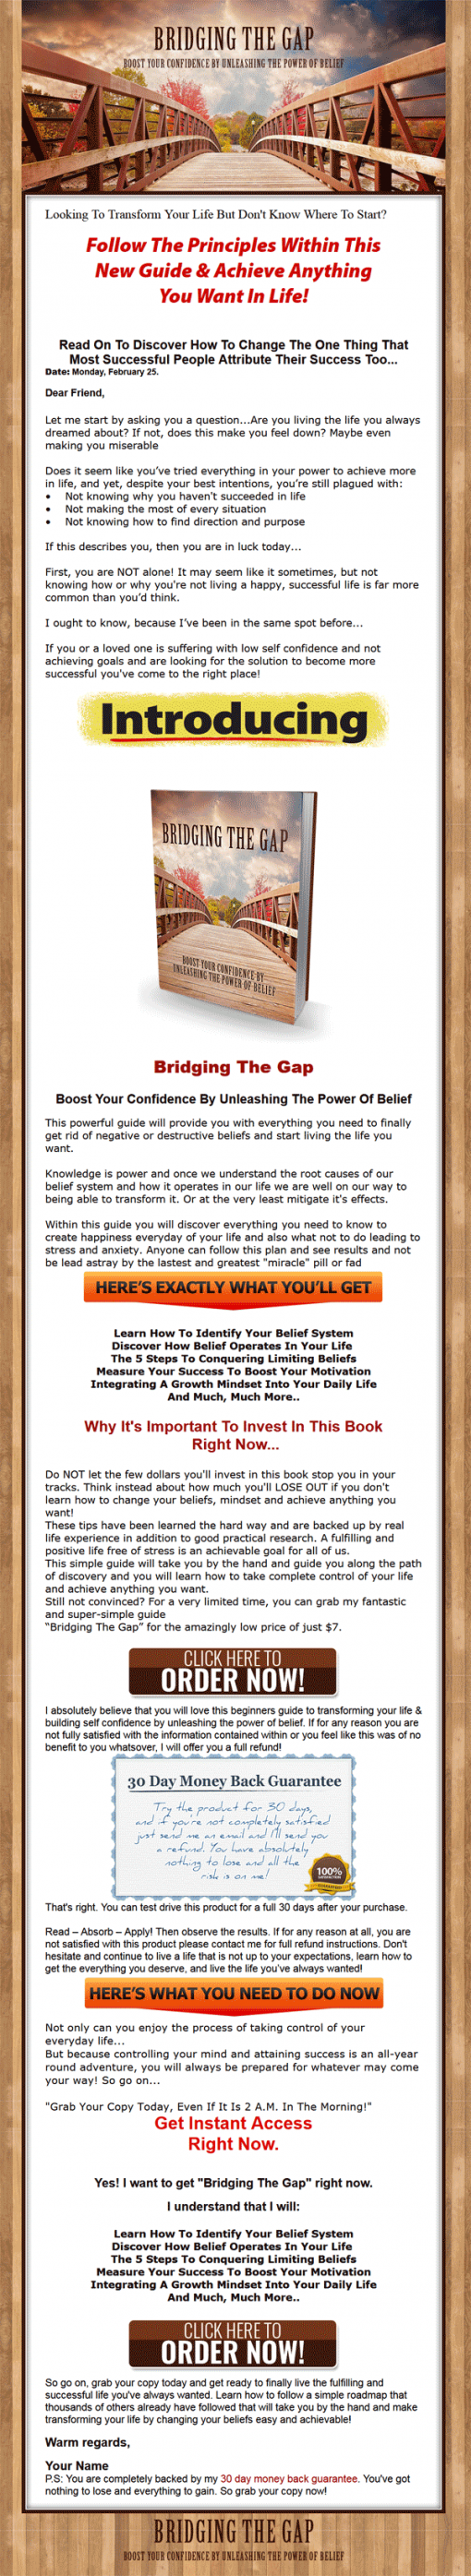 Boost Your Self Confidence Ebook and Videos MRR